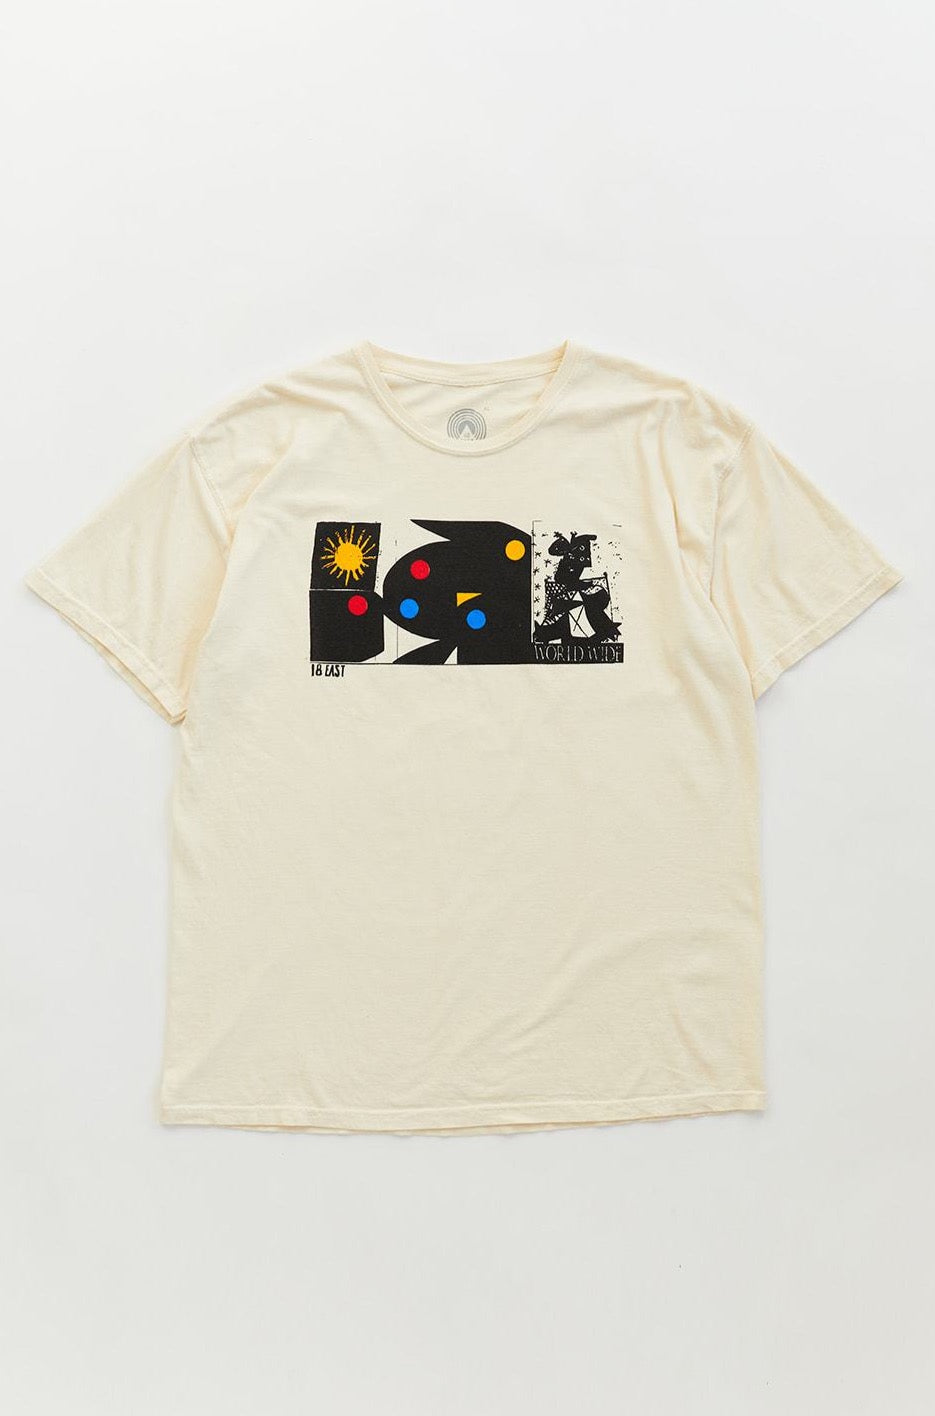 WORLDWIDE TEE - NATURAL